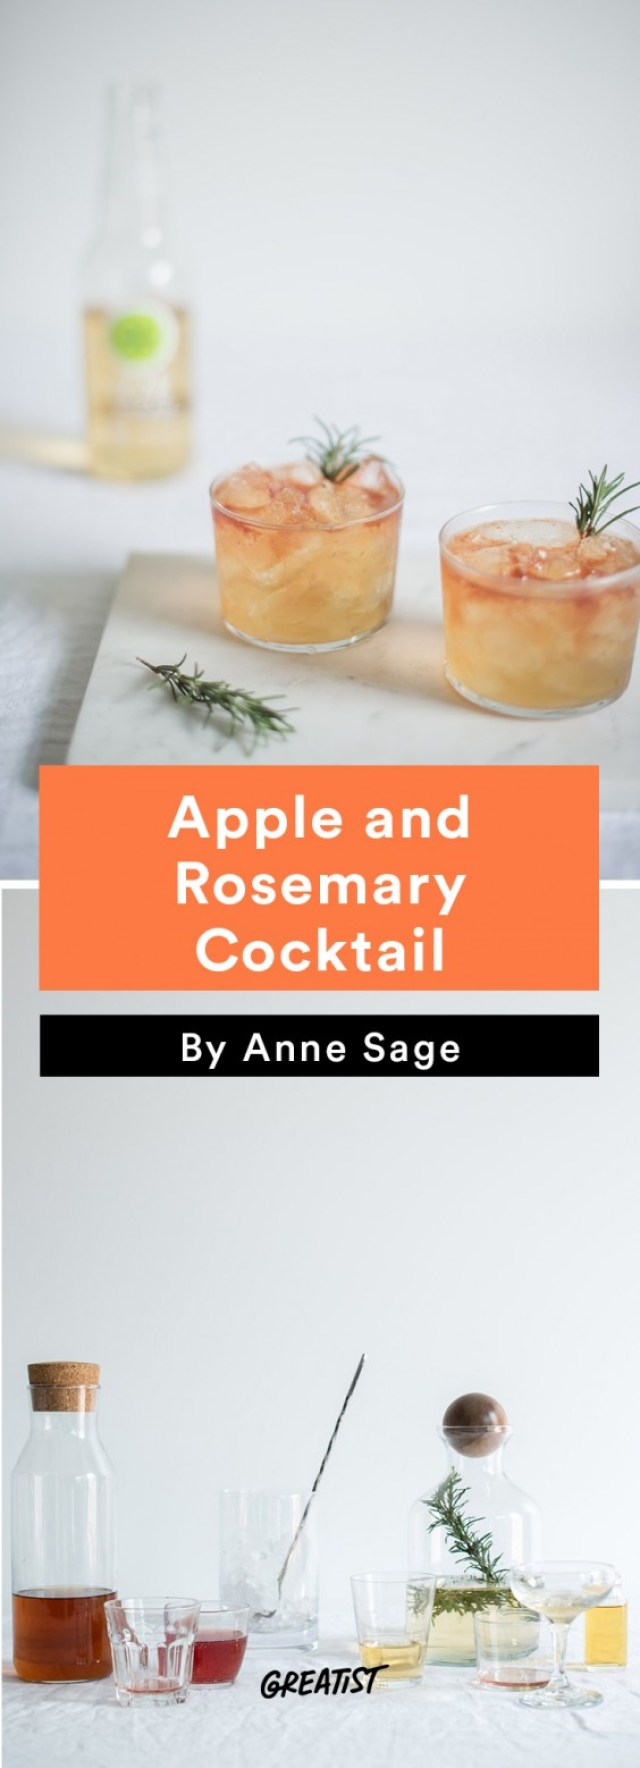 apple cocktails: Apple and Rosemary Cocktail